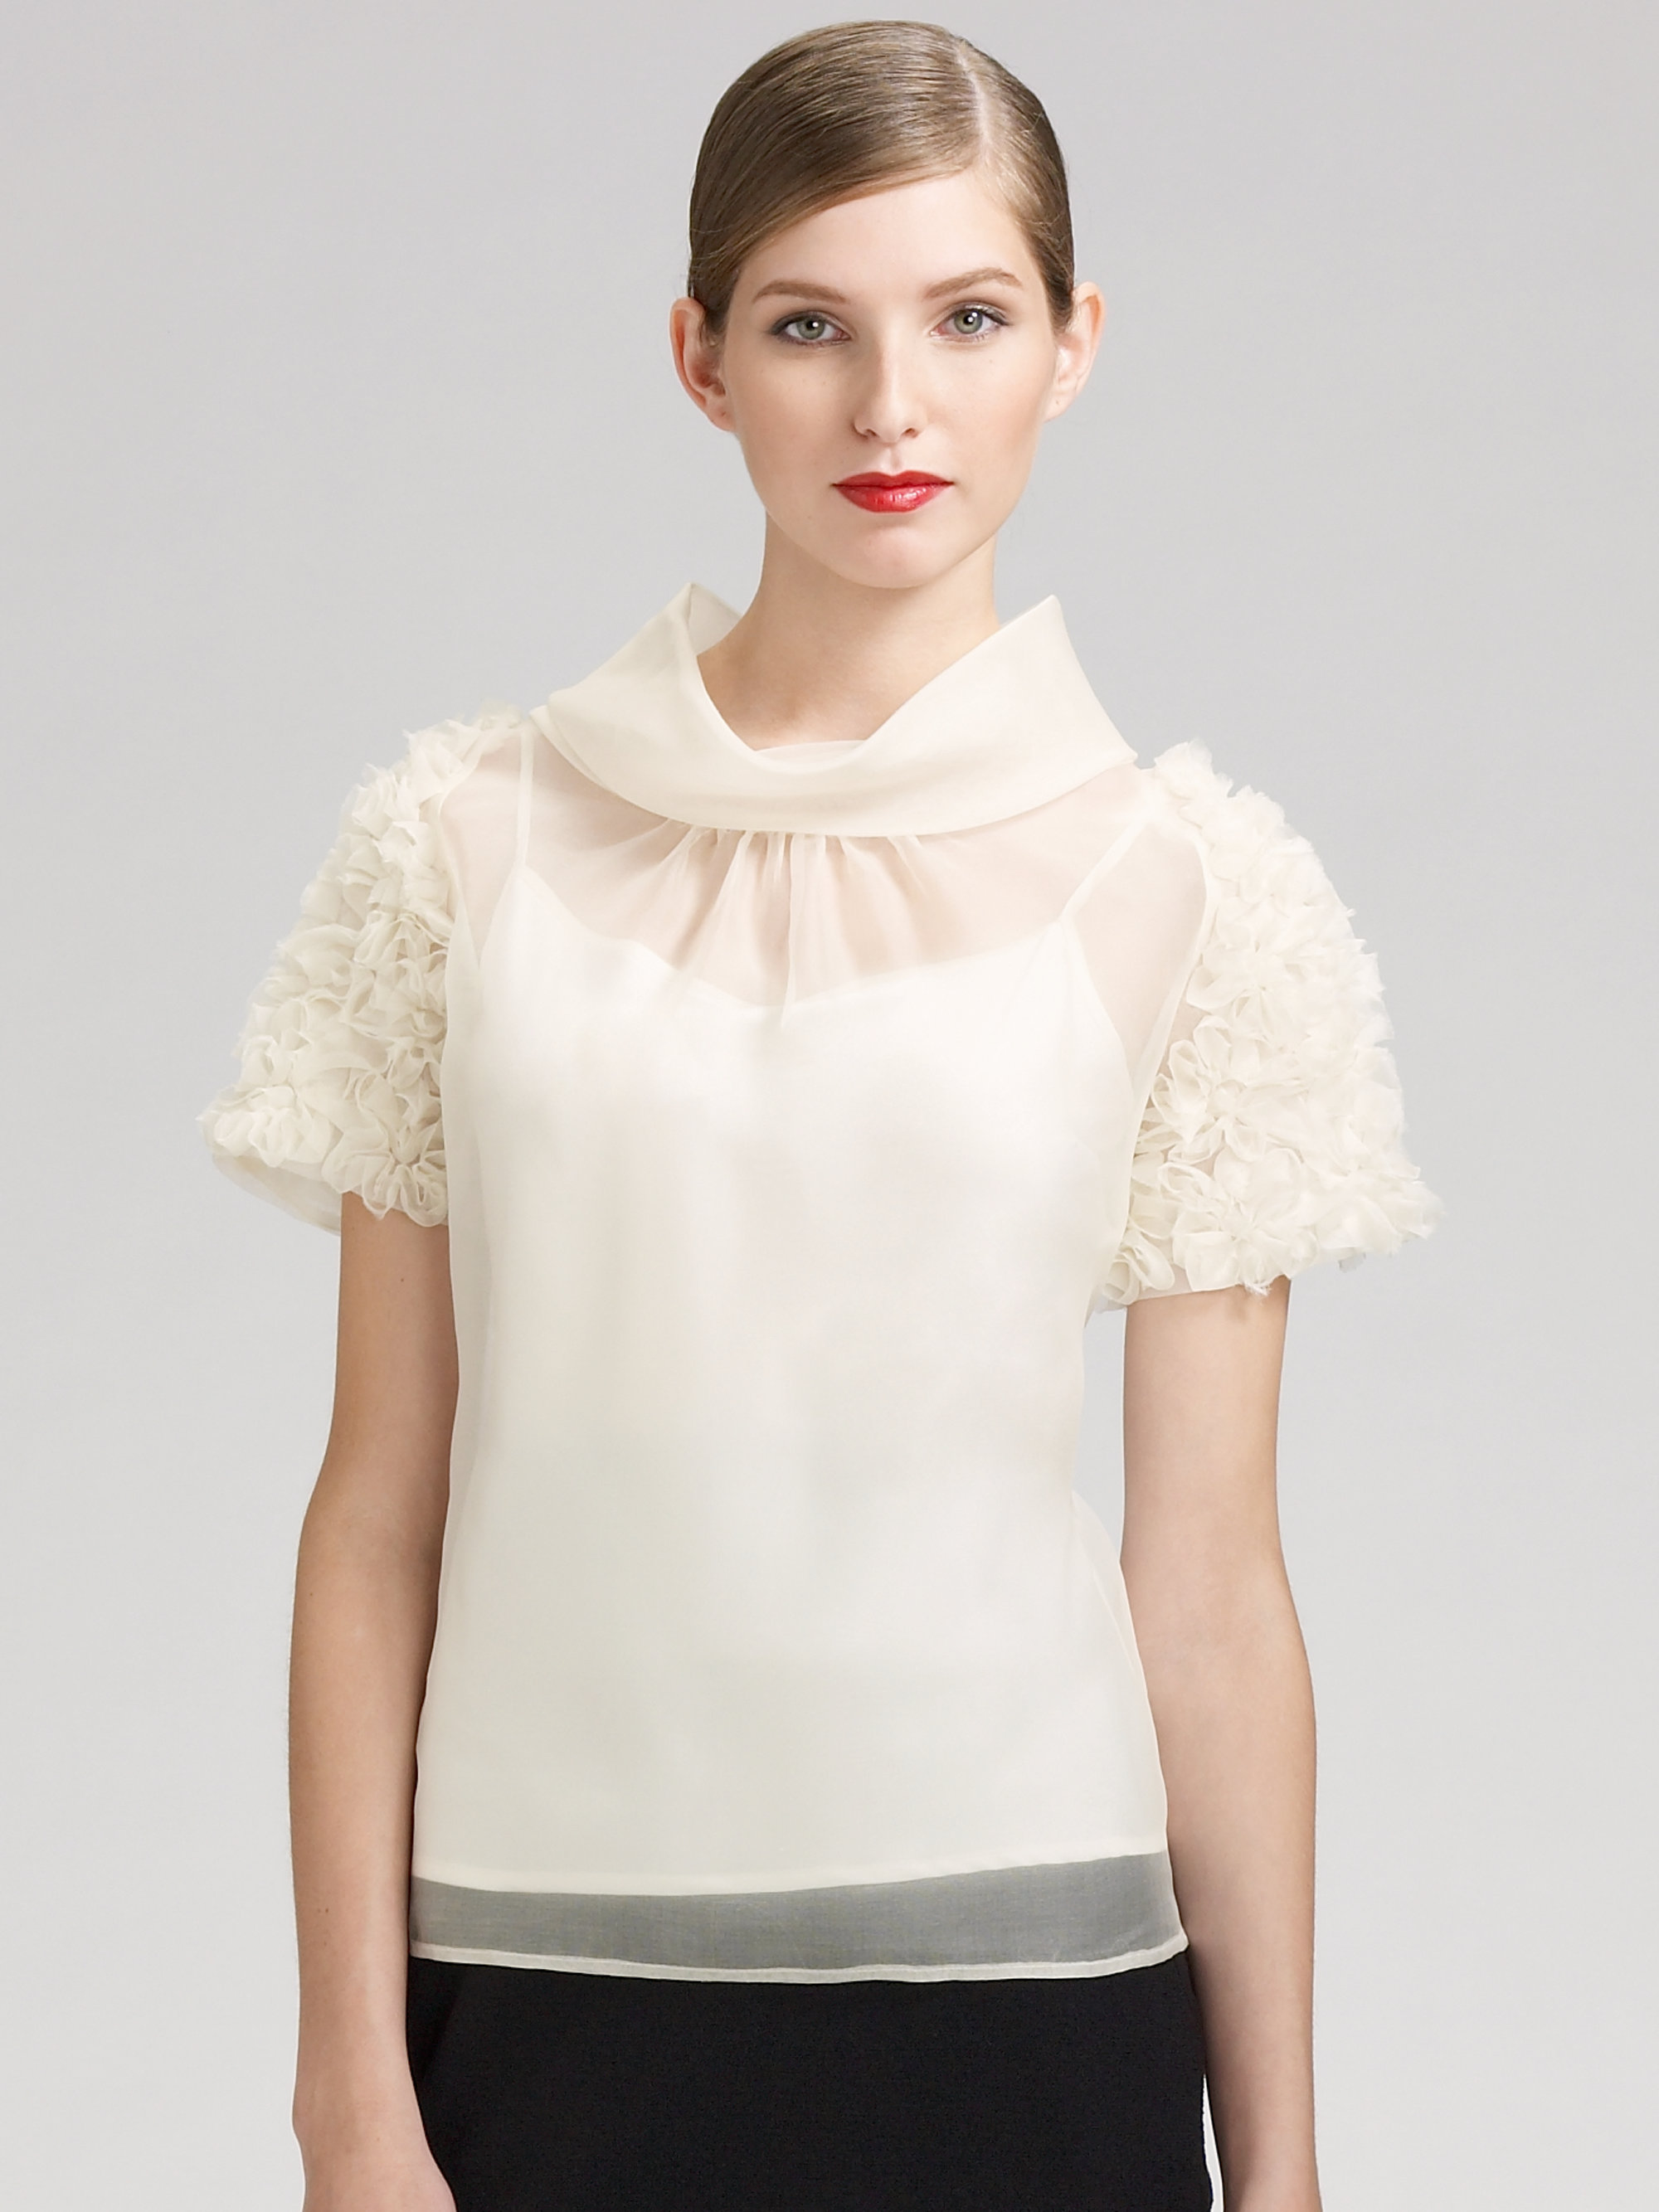 Stand Collar Blouse Designs Images : Lyst st john stand collar silk blouse in natural